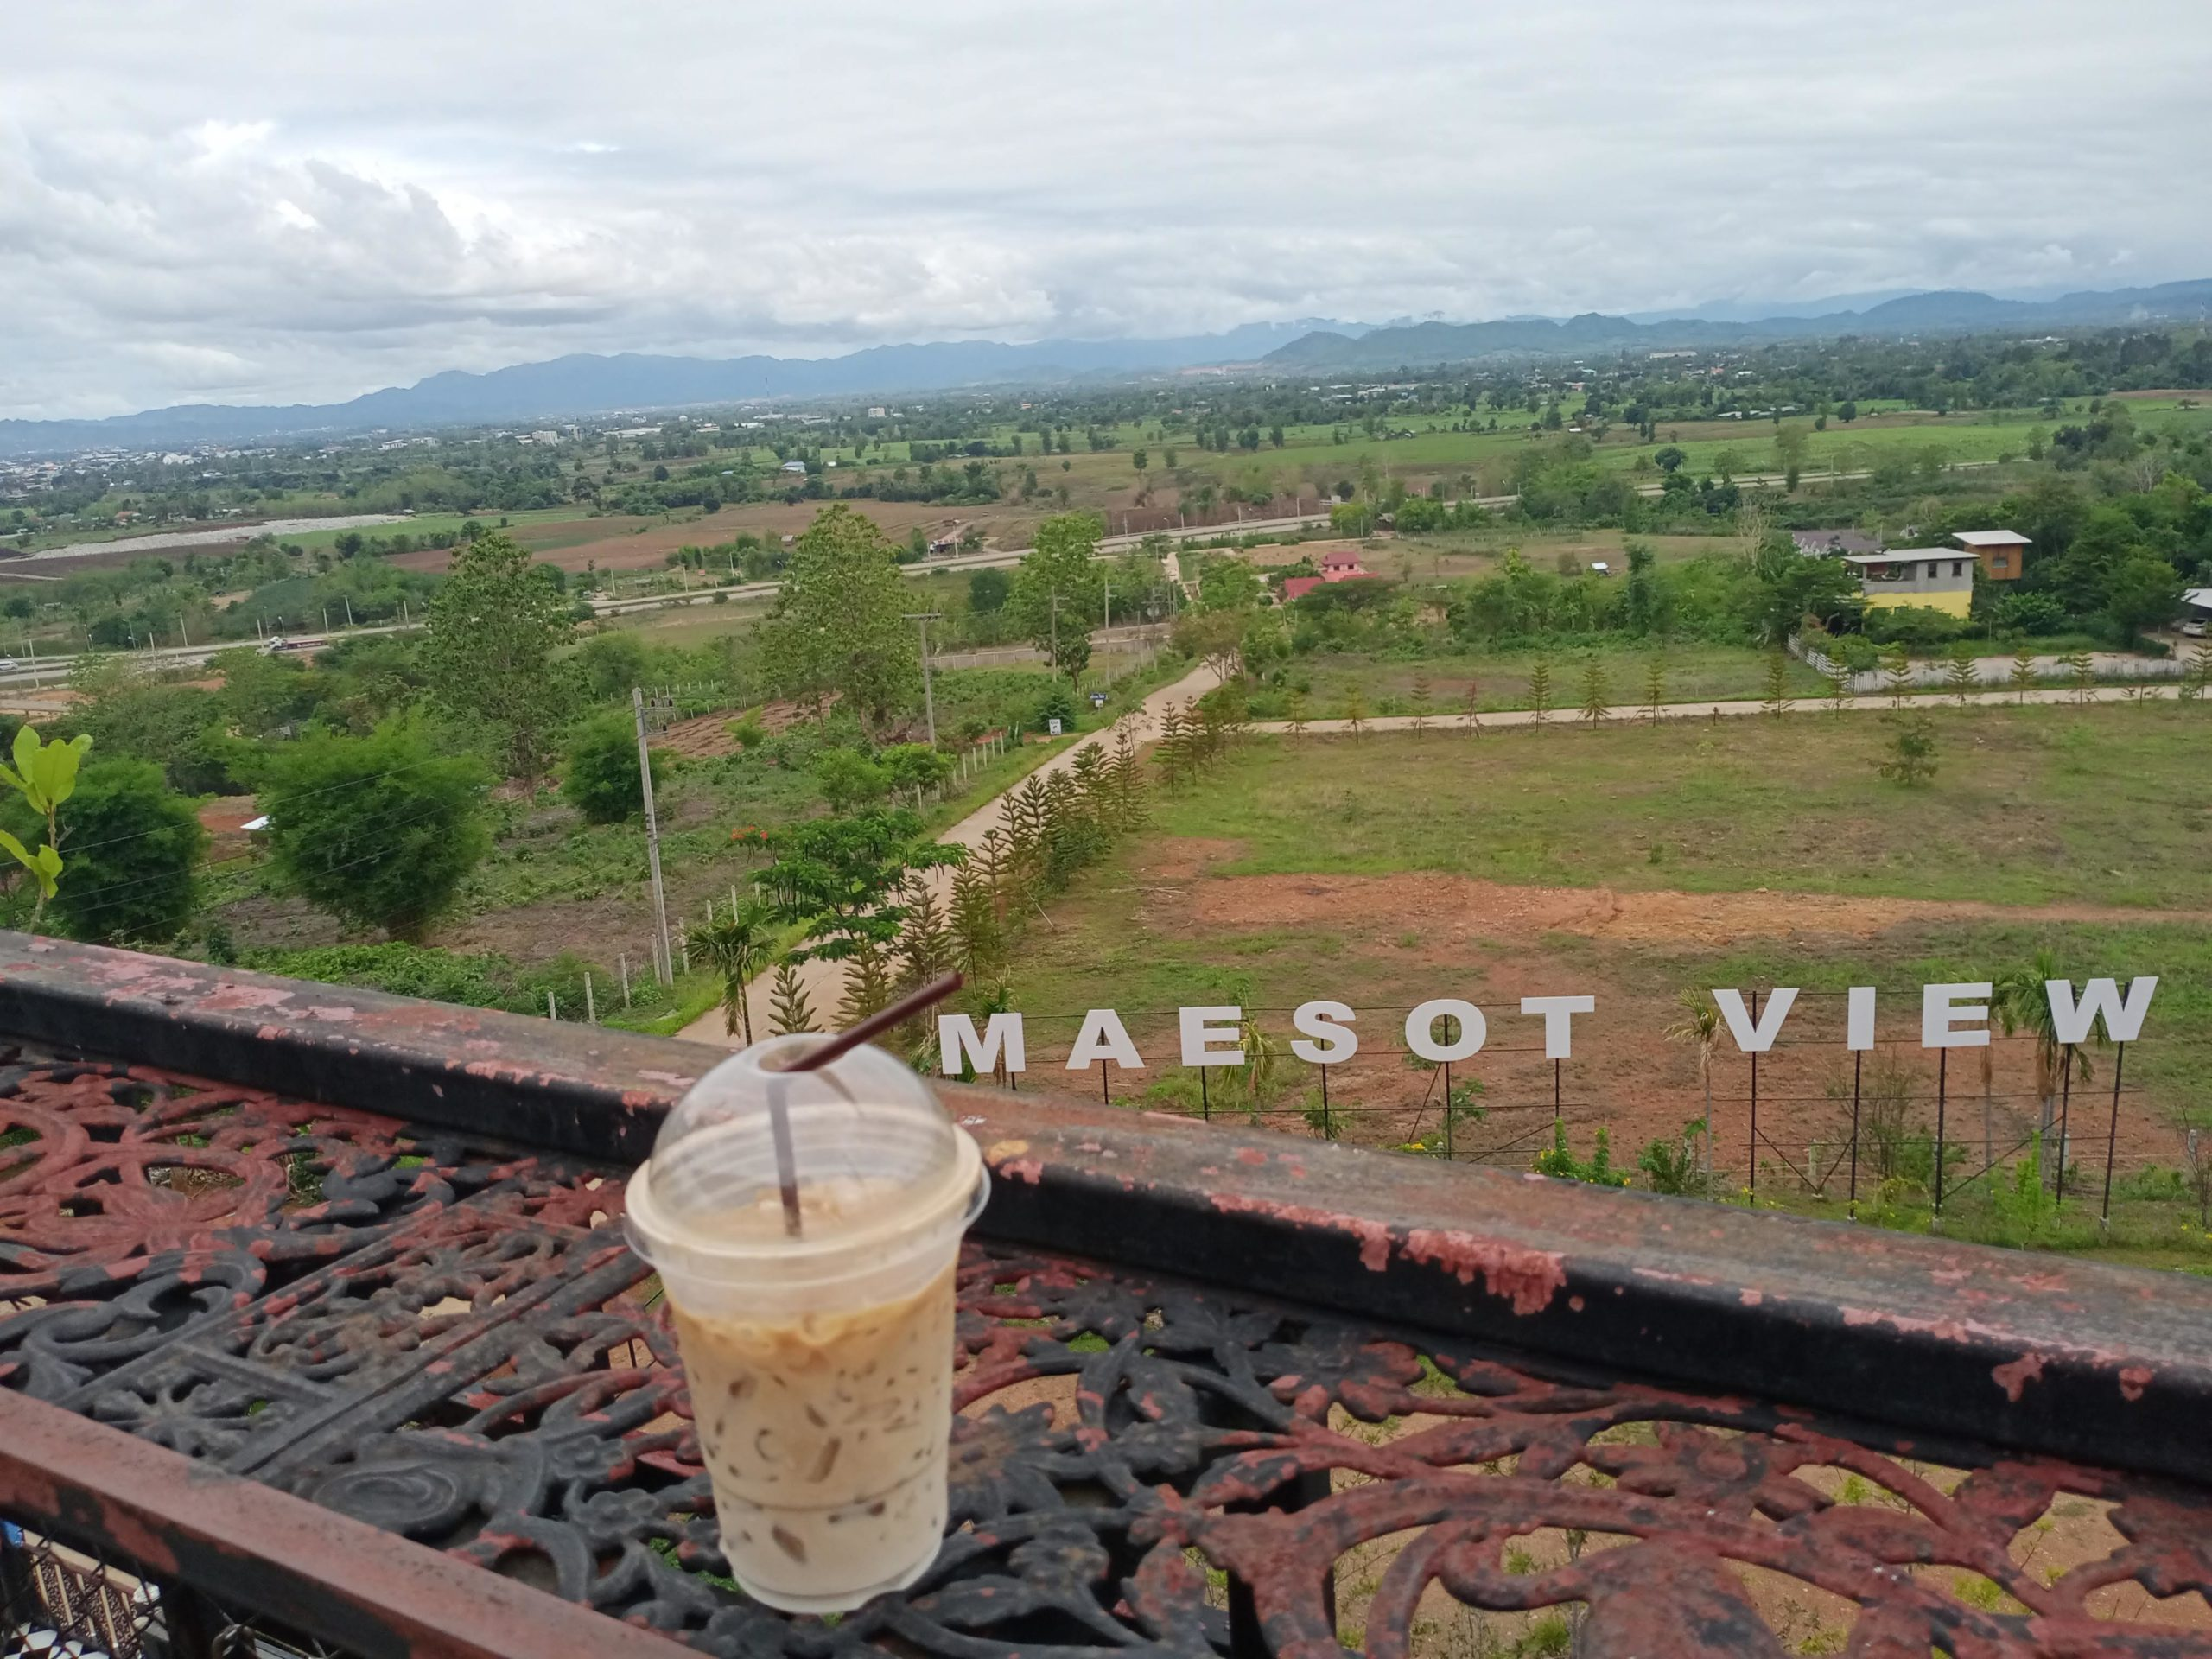 Many of our teachers fall in love with parts of Thailand they'd never heard of before. In Hayley's case, she fell for the Northwestern city, Mae Sot